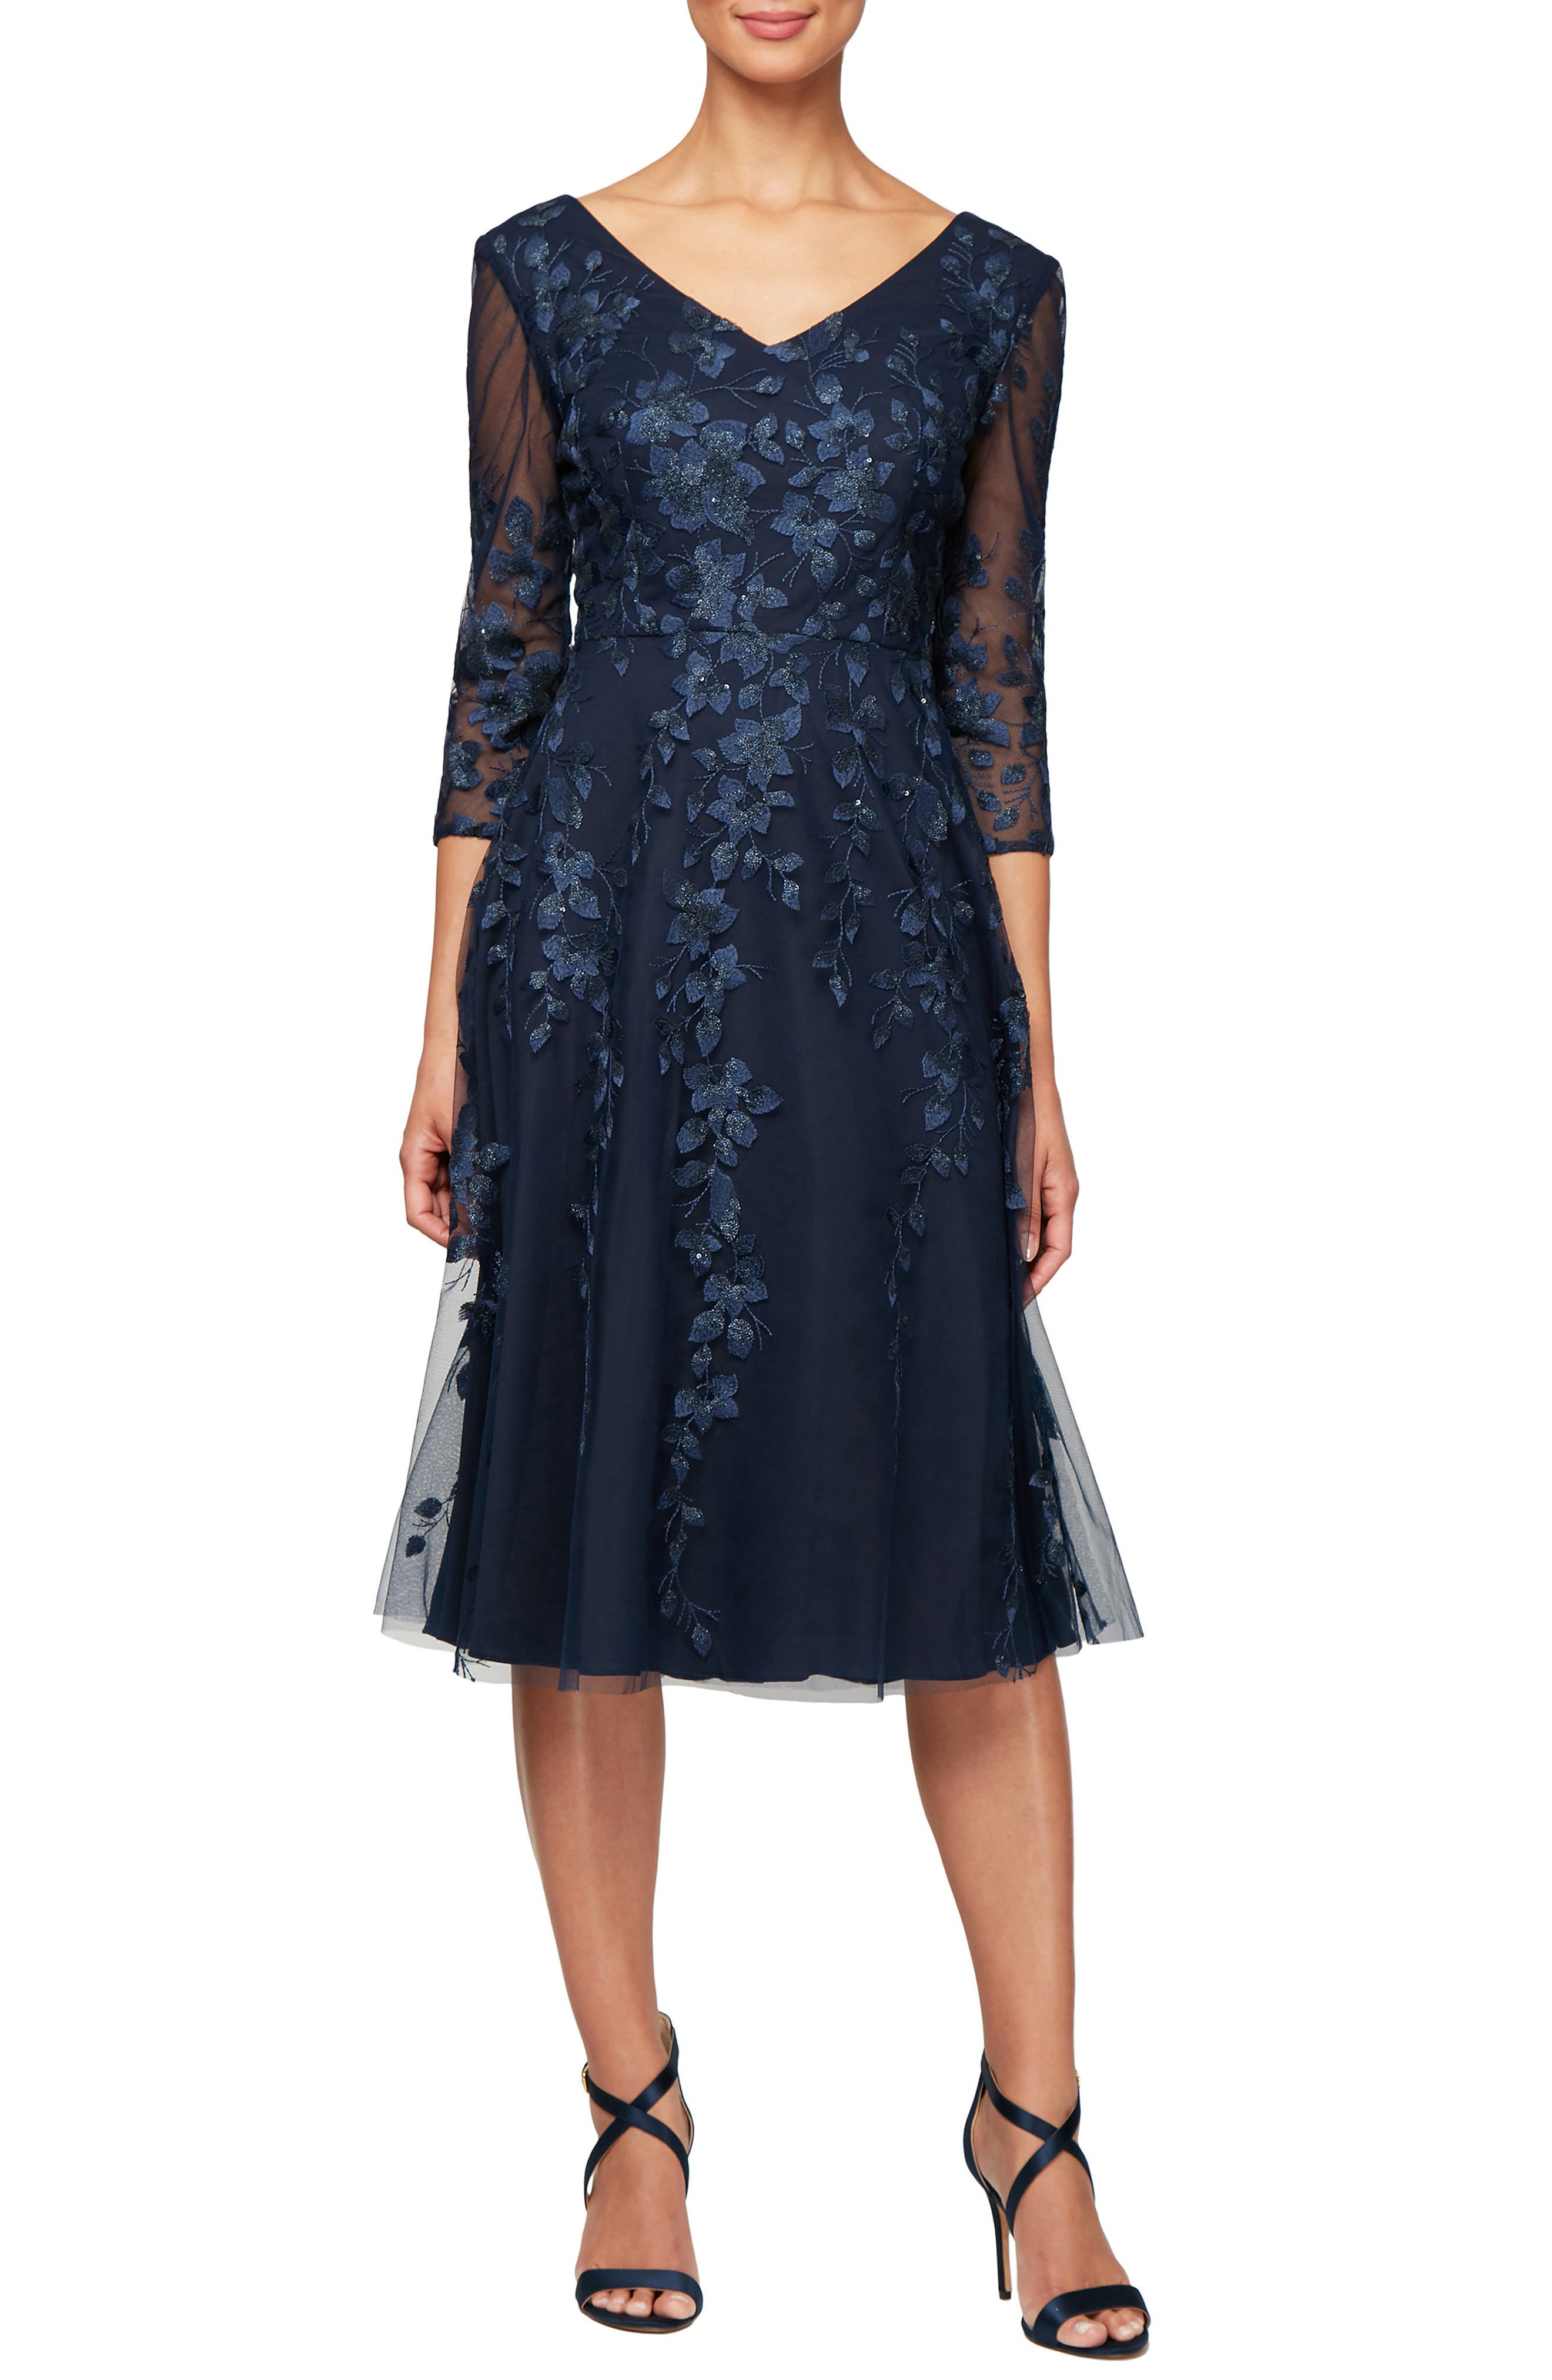 ALEX EVENINGS, V-Neck Embroidered Mesh Cocktail Dress, Main thumbnail 1, color, 410